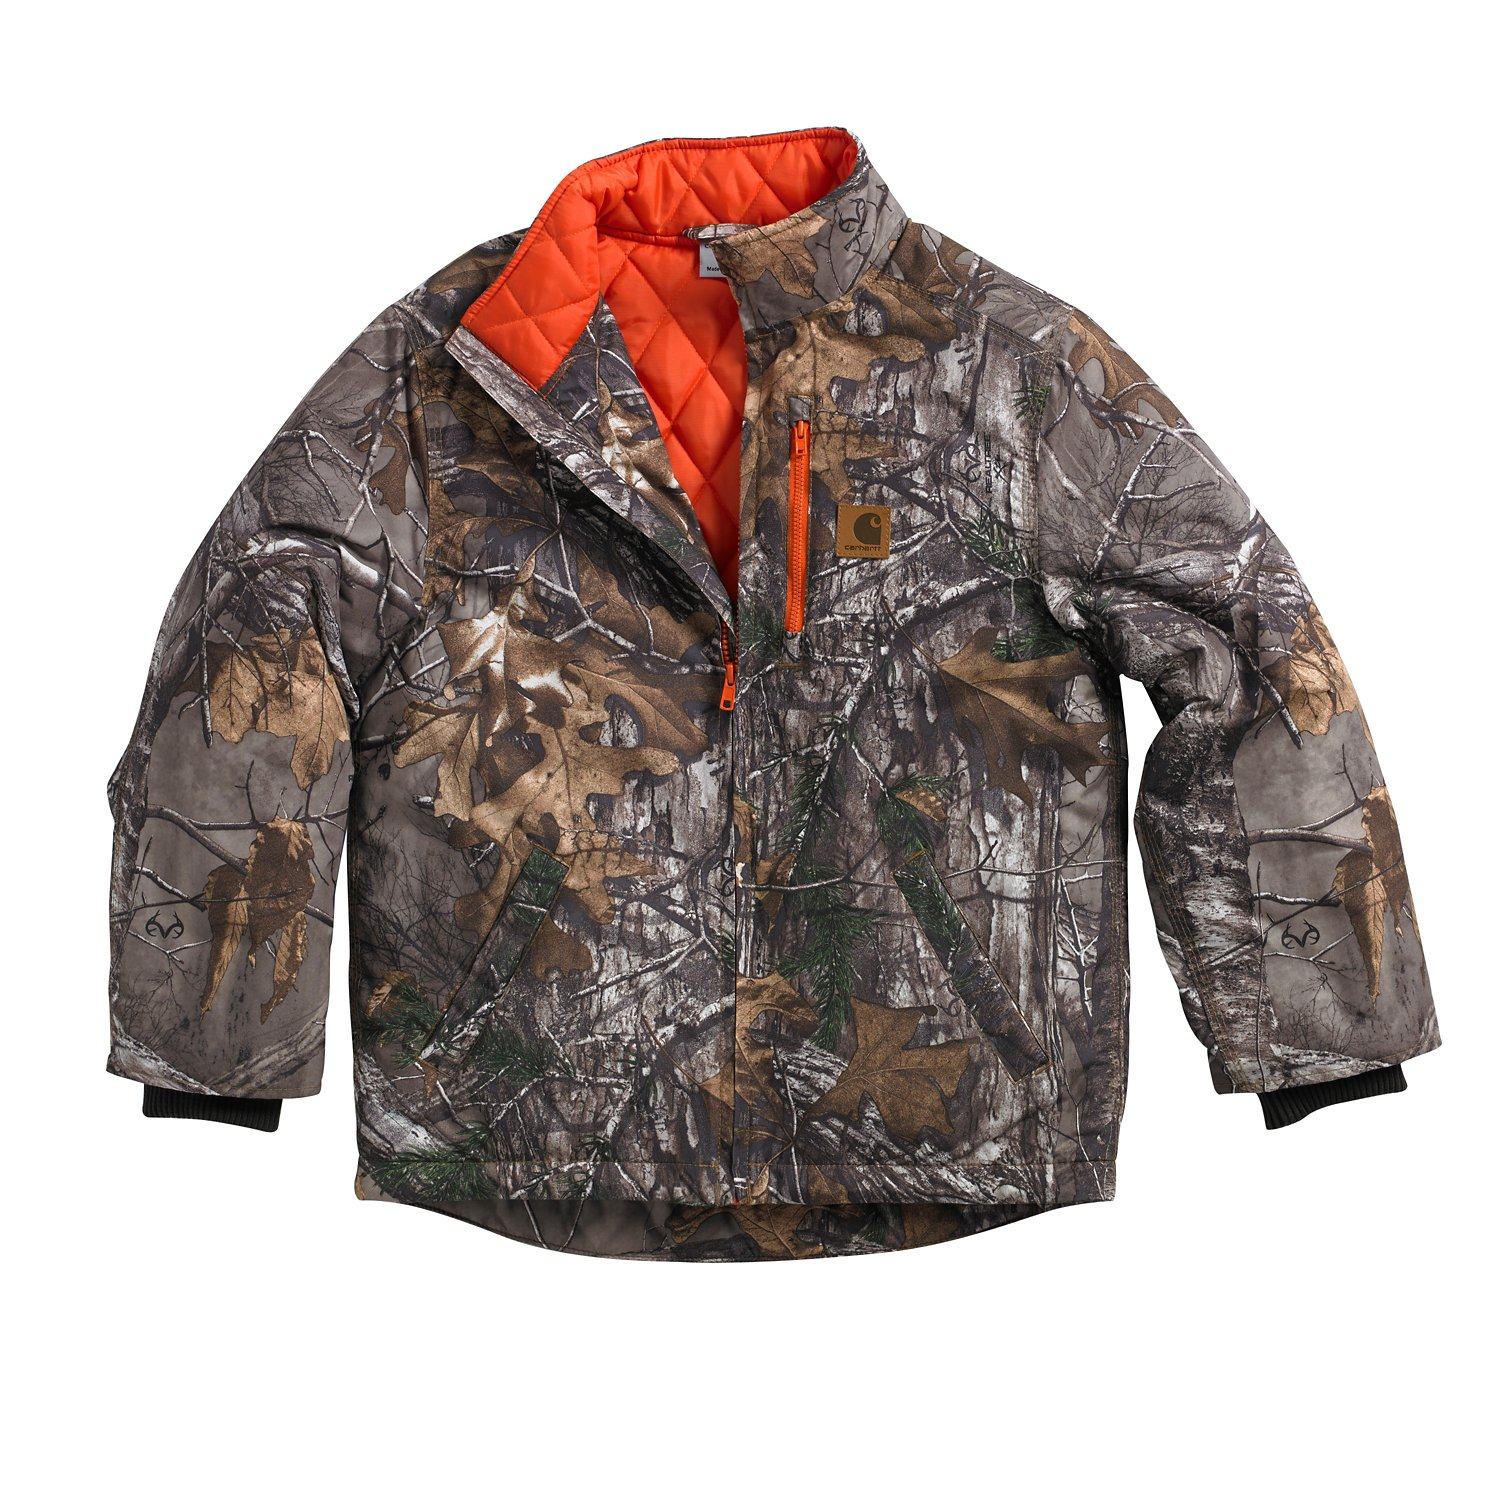 e2eb8529c Display product reviews for Carhartt Boys' Quilted Flannel Realtree Xtra  Camo Jacket